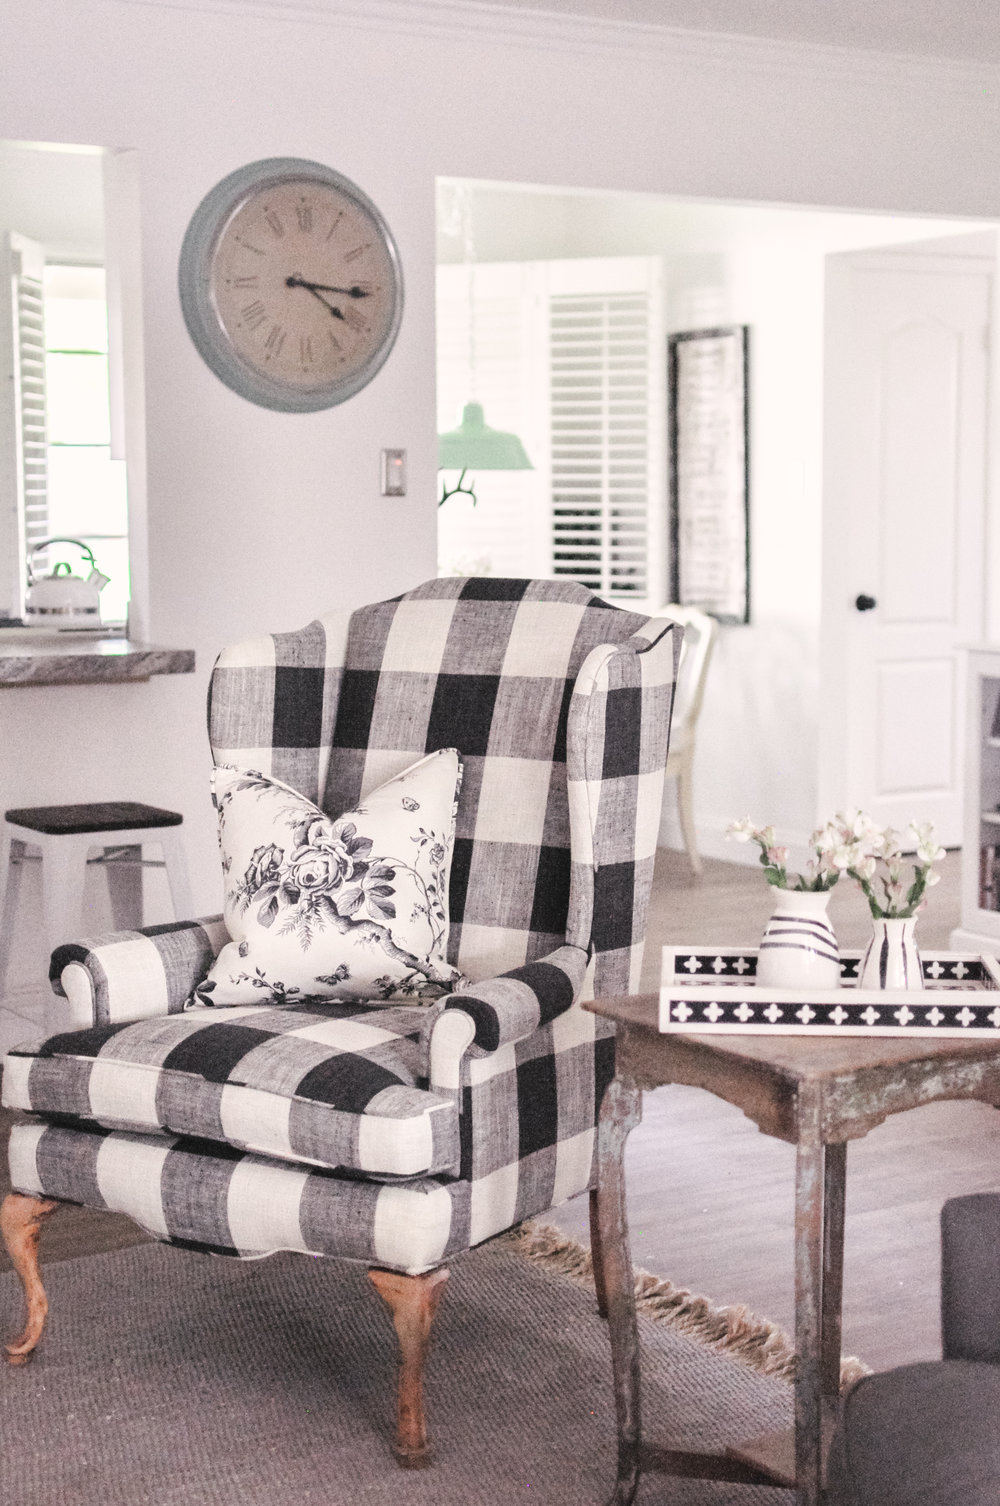 Our Farmhouse Living Room Makeover + Our Buffalo Check Chair! - Love ...